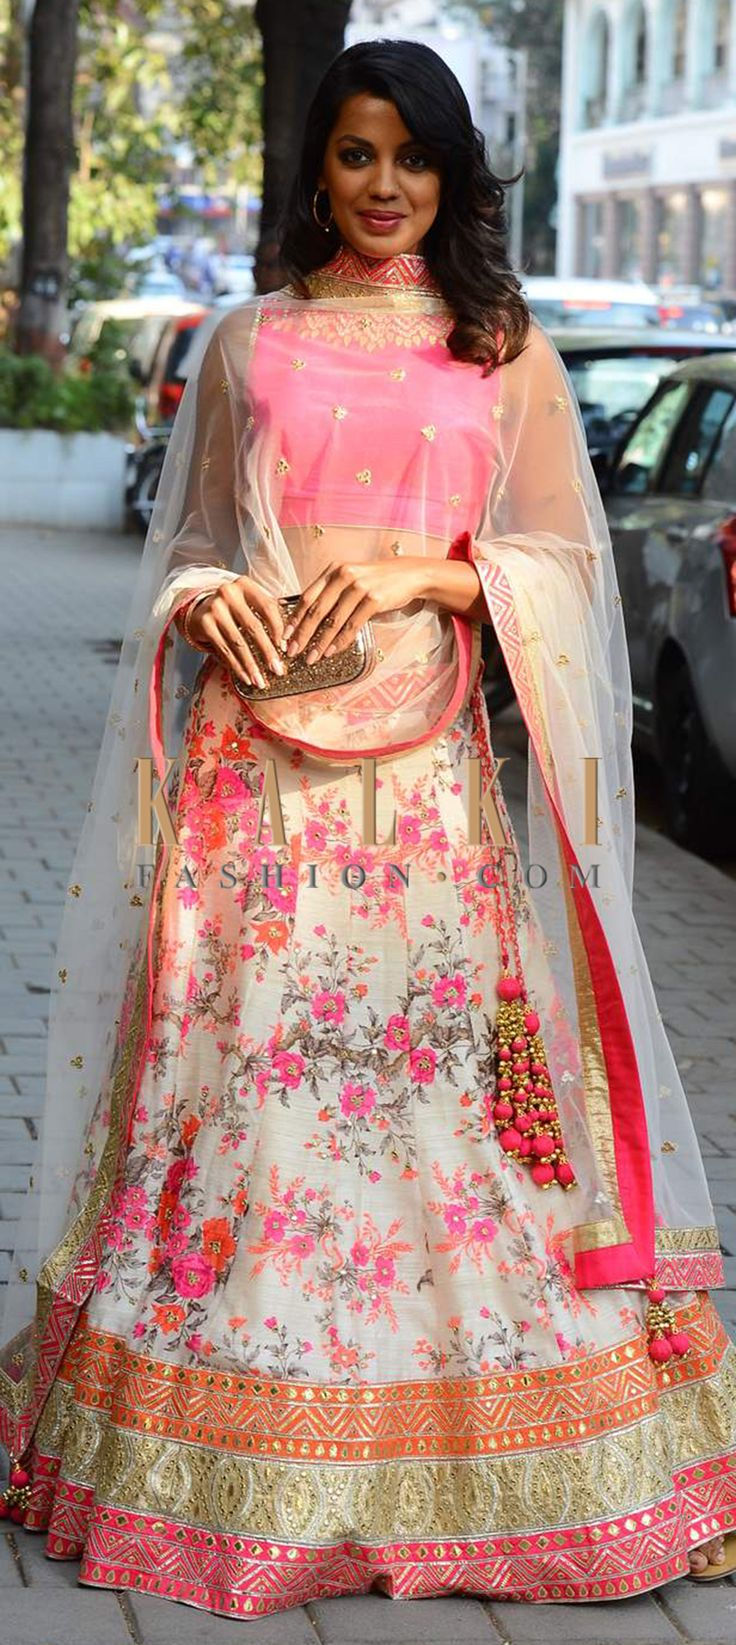 Saree Draping In Different Styles 7 Different Ways To